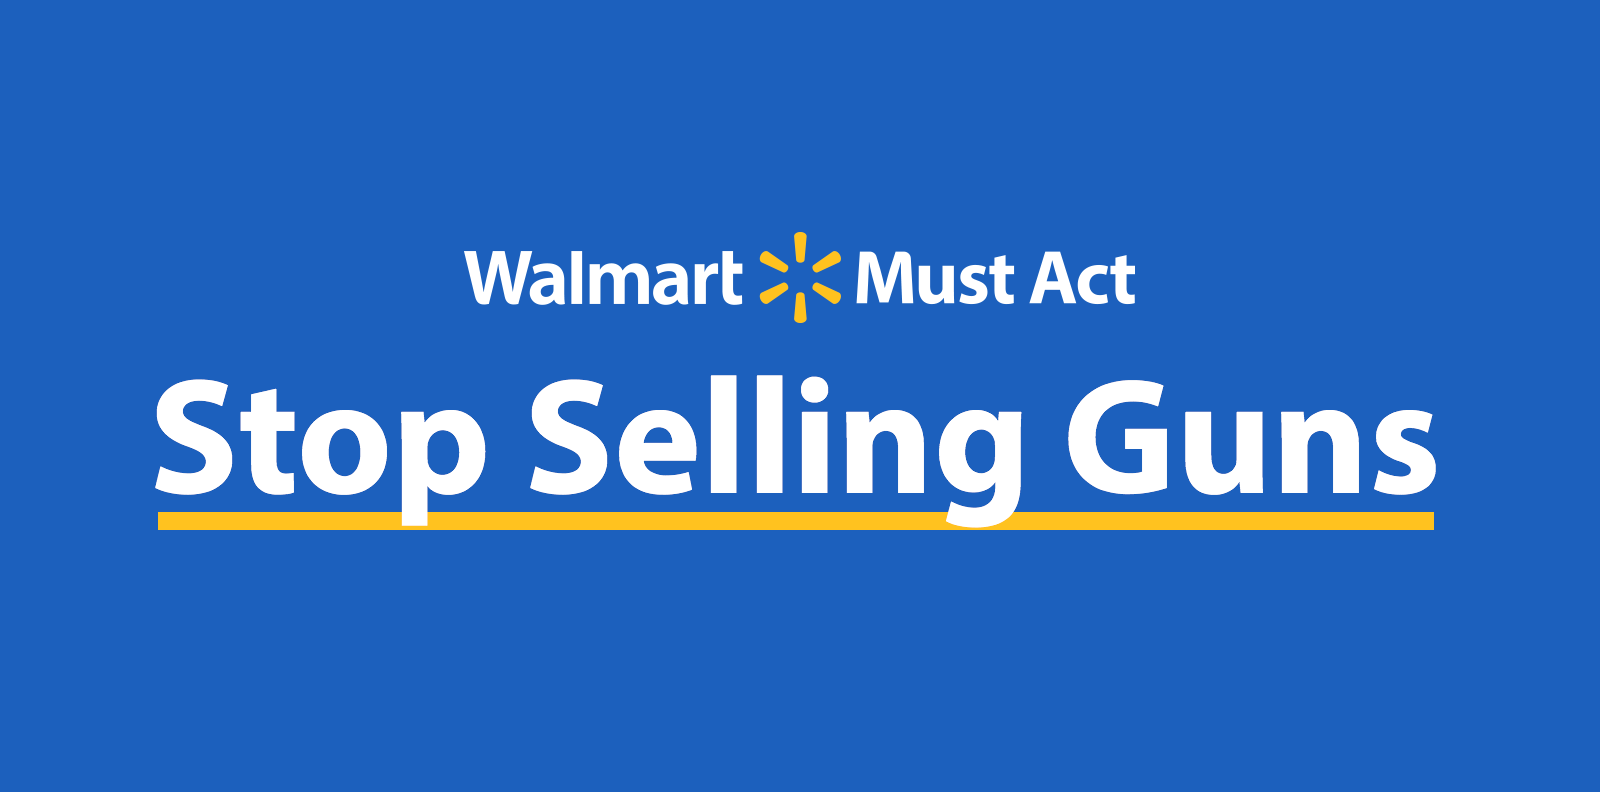 Walmart Must Act: Stop Selling Guns